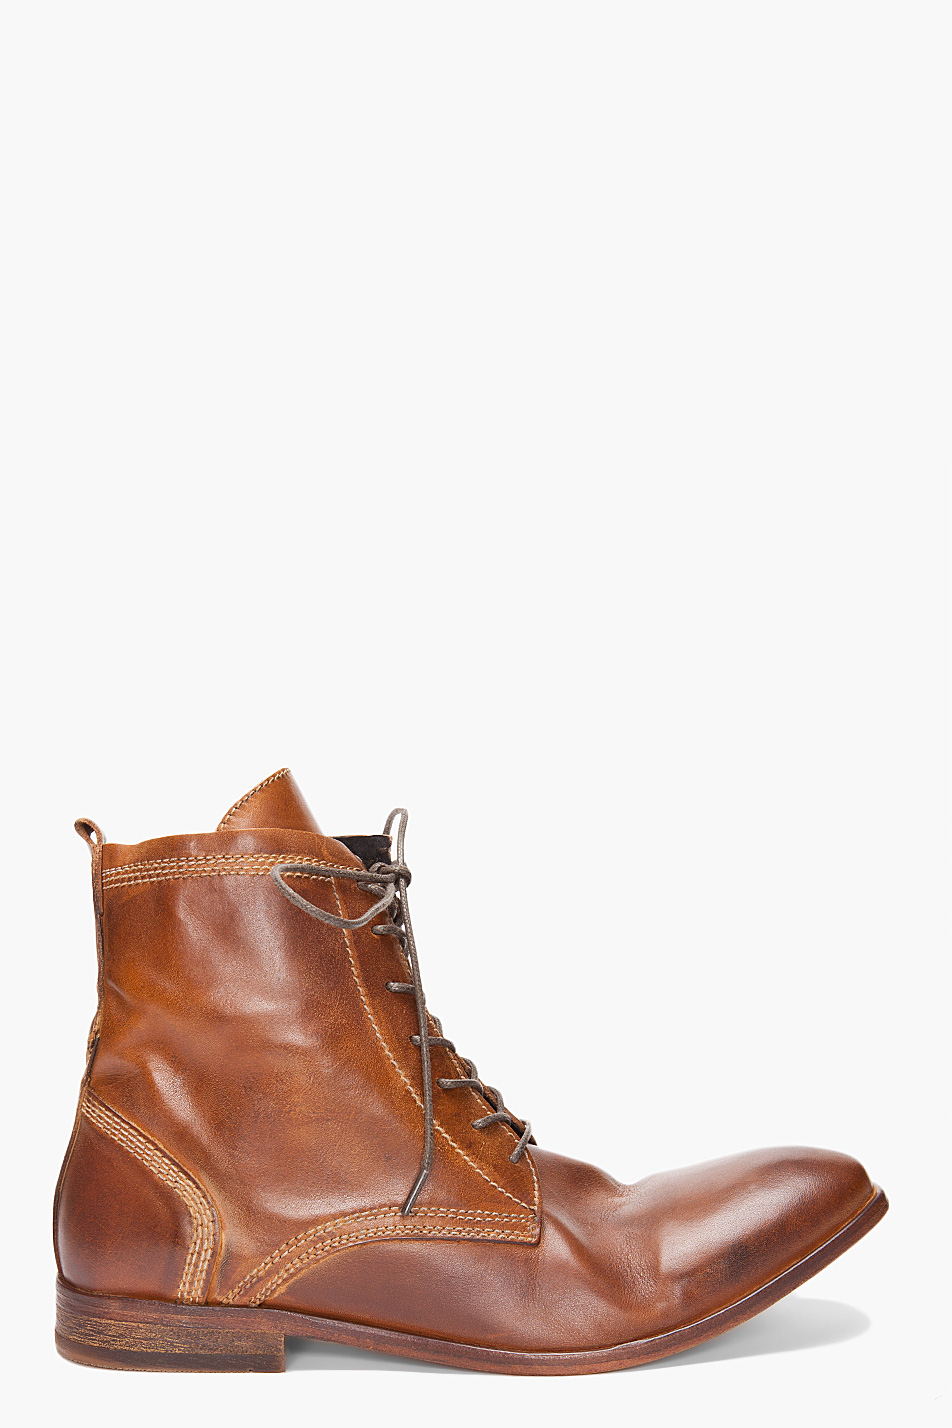 h by hudson strathmore boots in brown for lyst